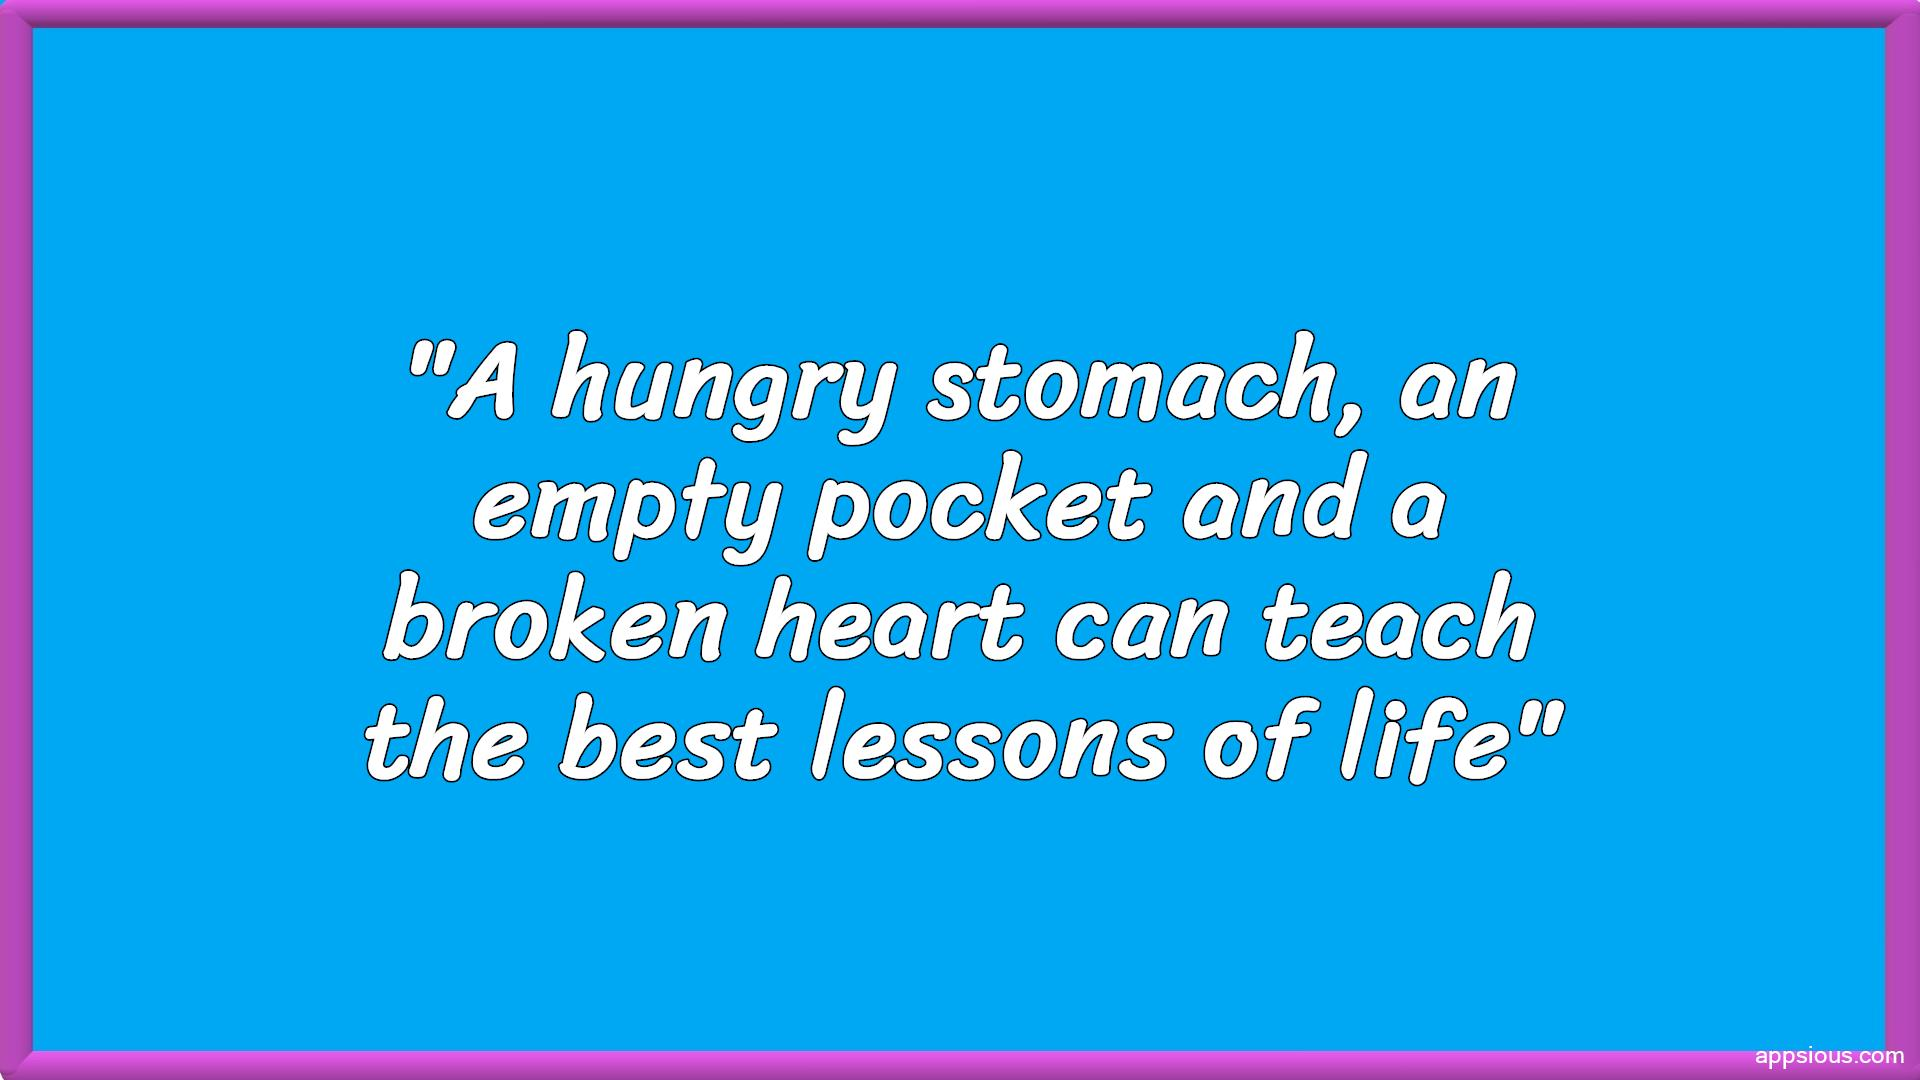 A hungry stomach, an empty pocket and a broken heart can teach the best lessons of life